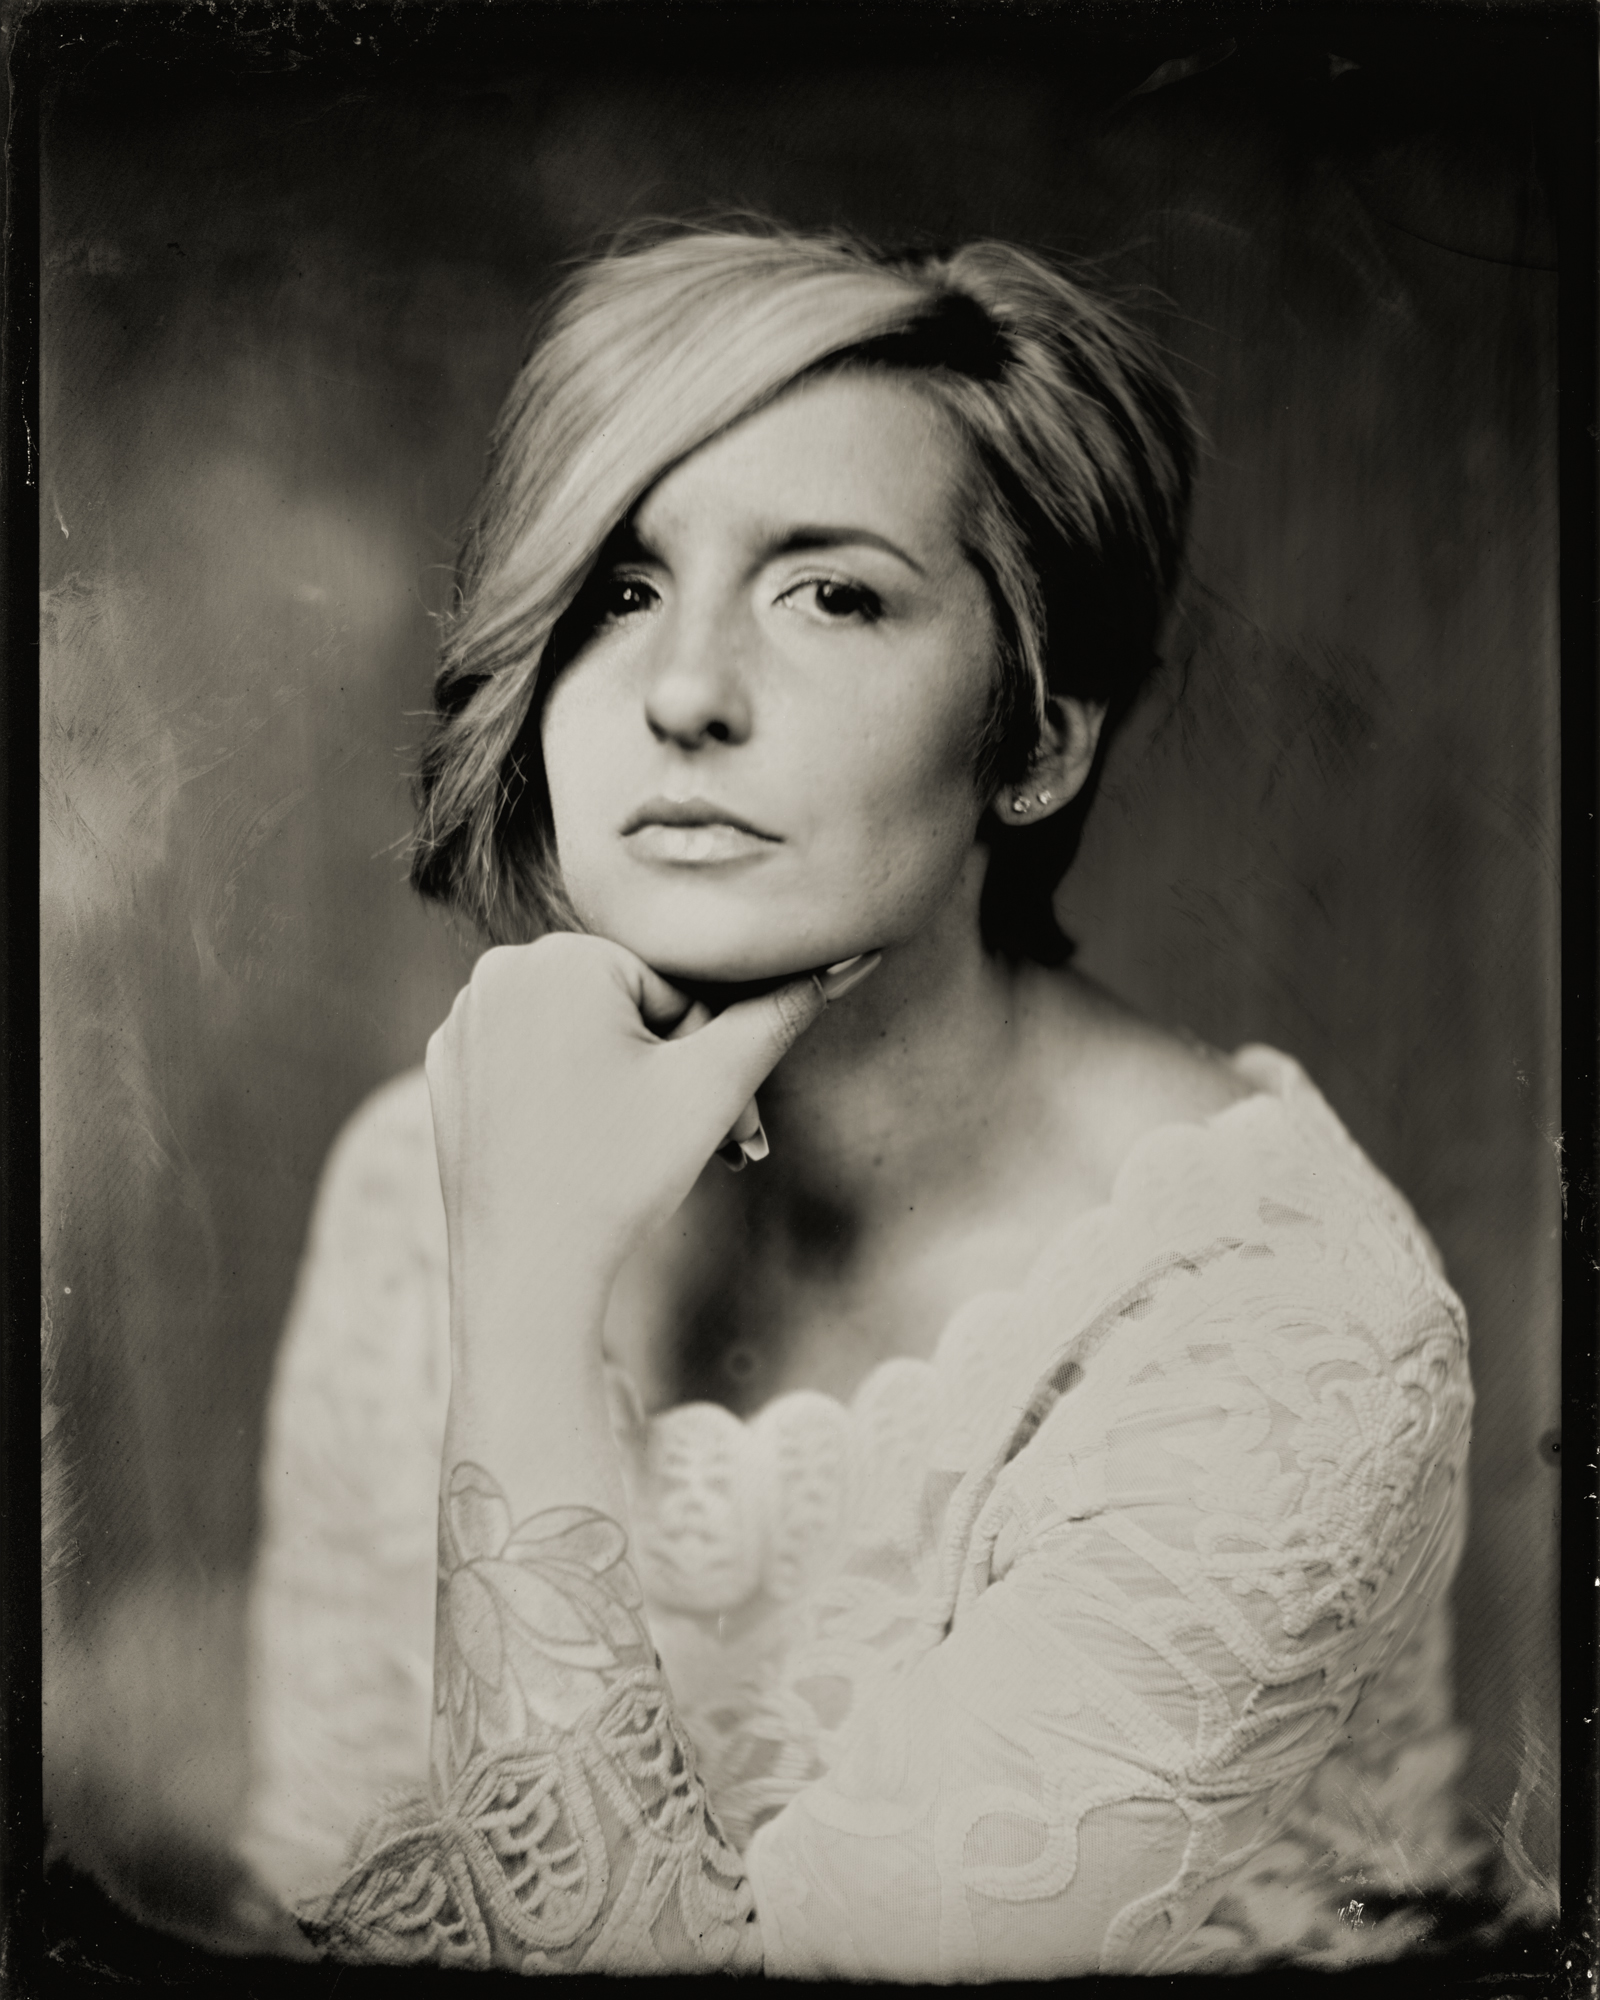 Copy of 11x14 Tintype